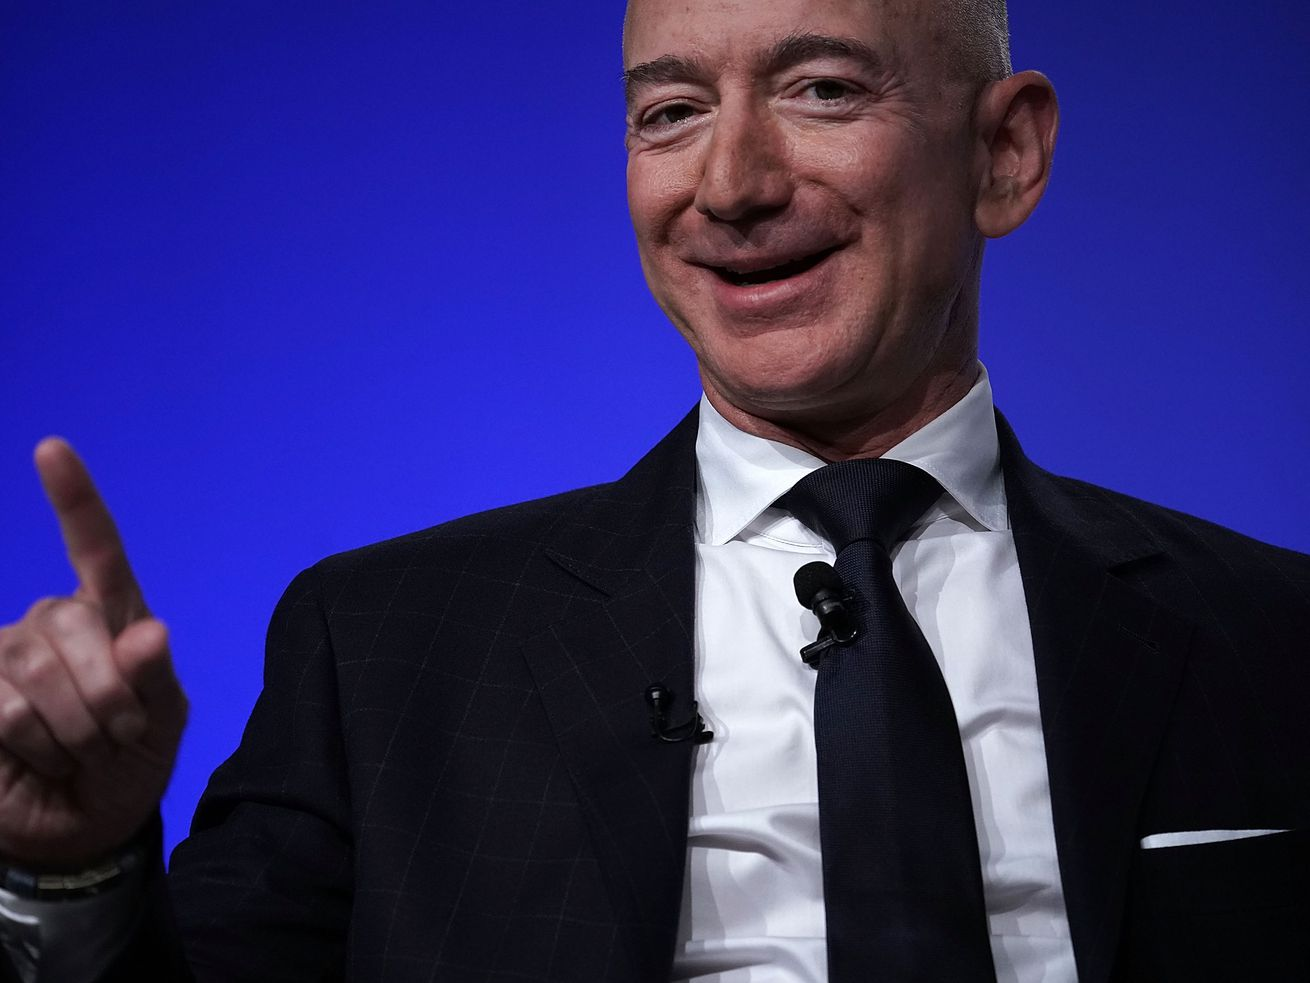 Amazon CEO Jeff Bezos speaks at the Air Force Association Air, Space, and Cyber conference.